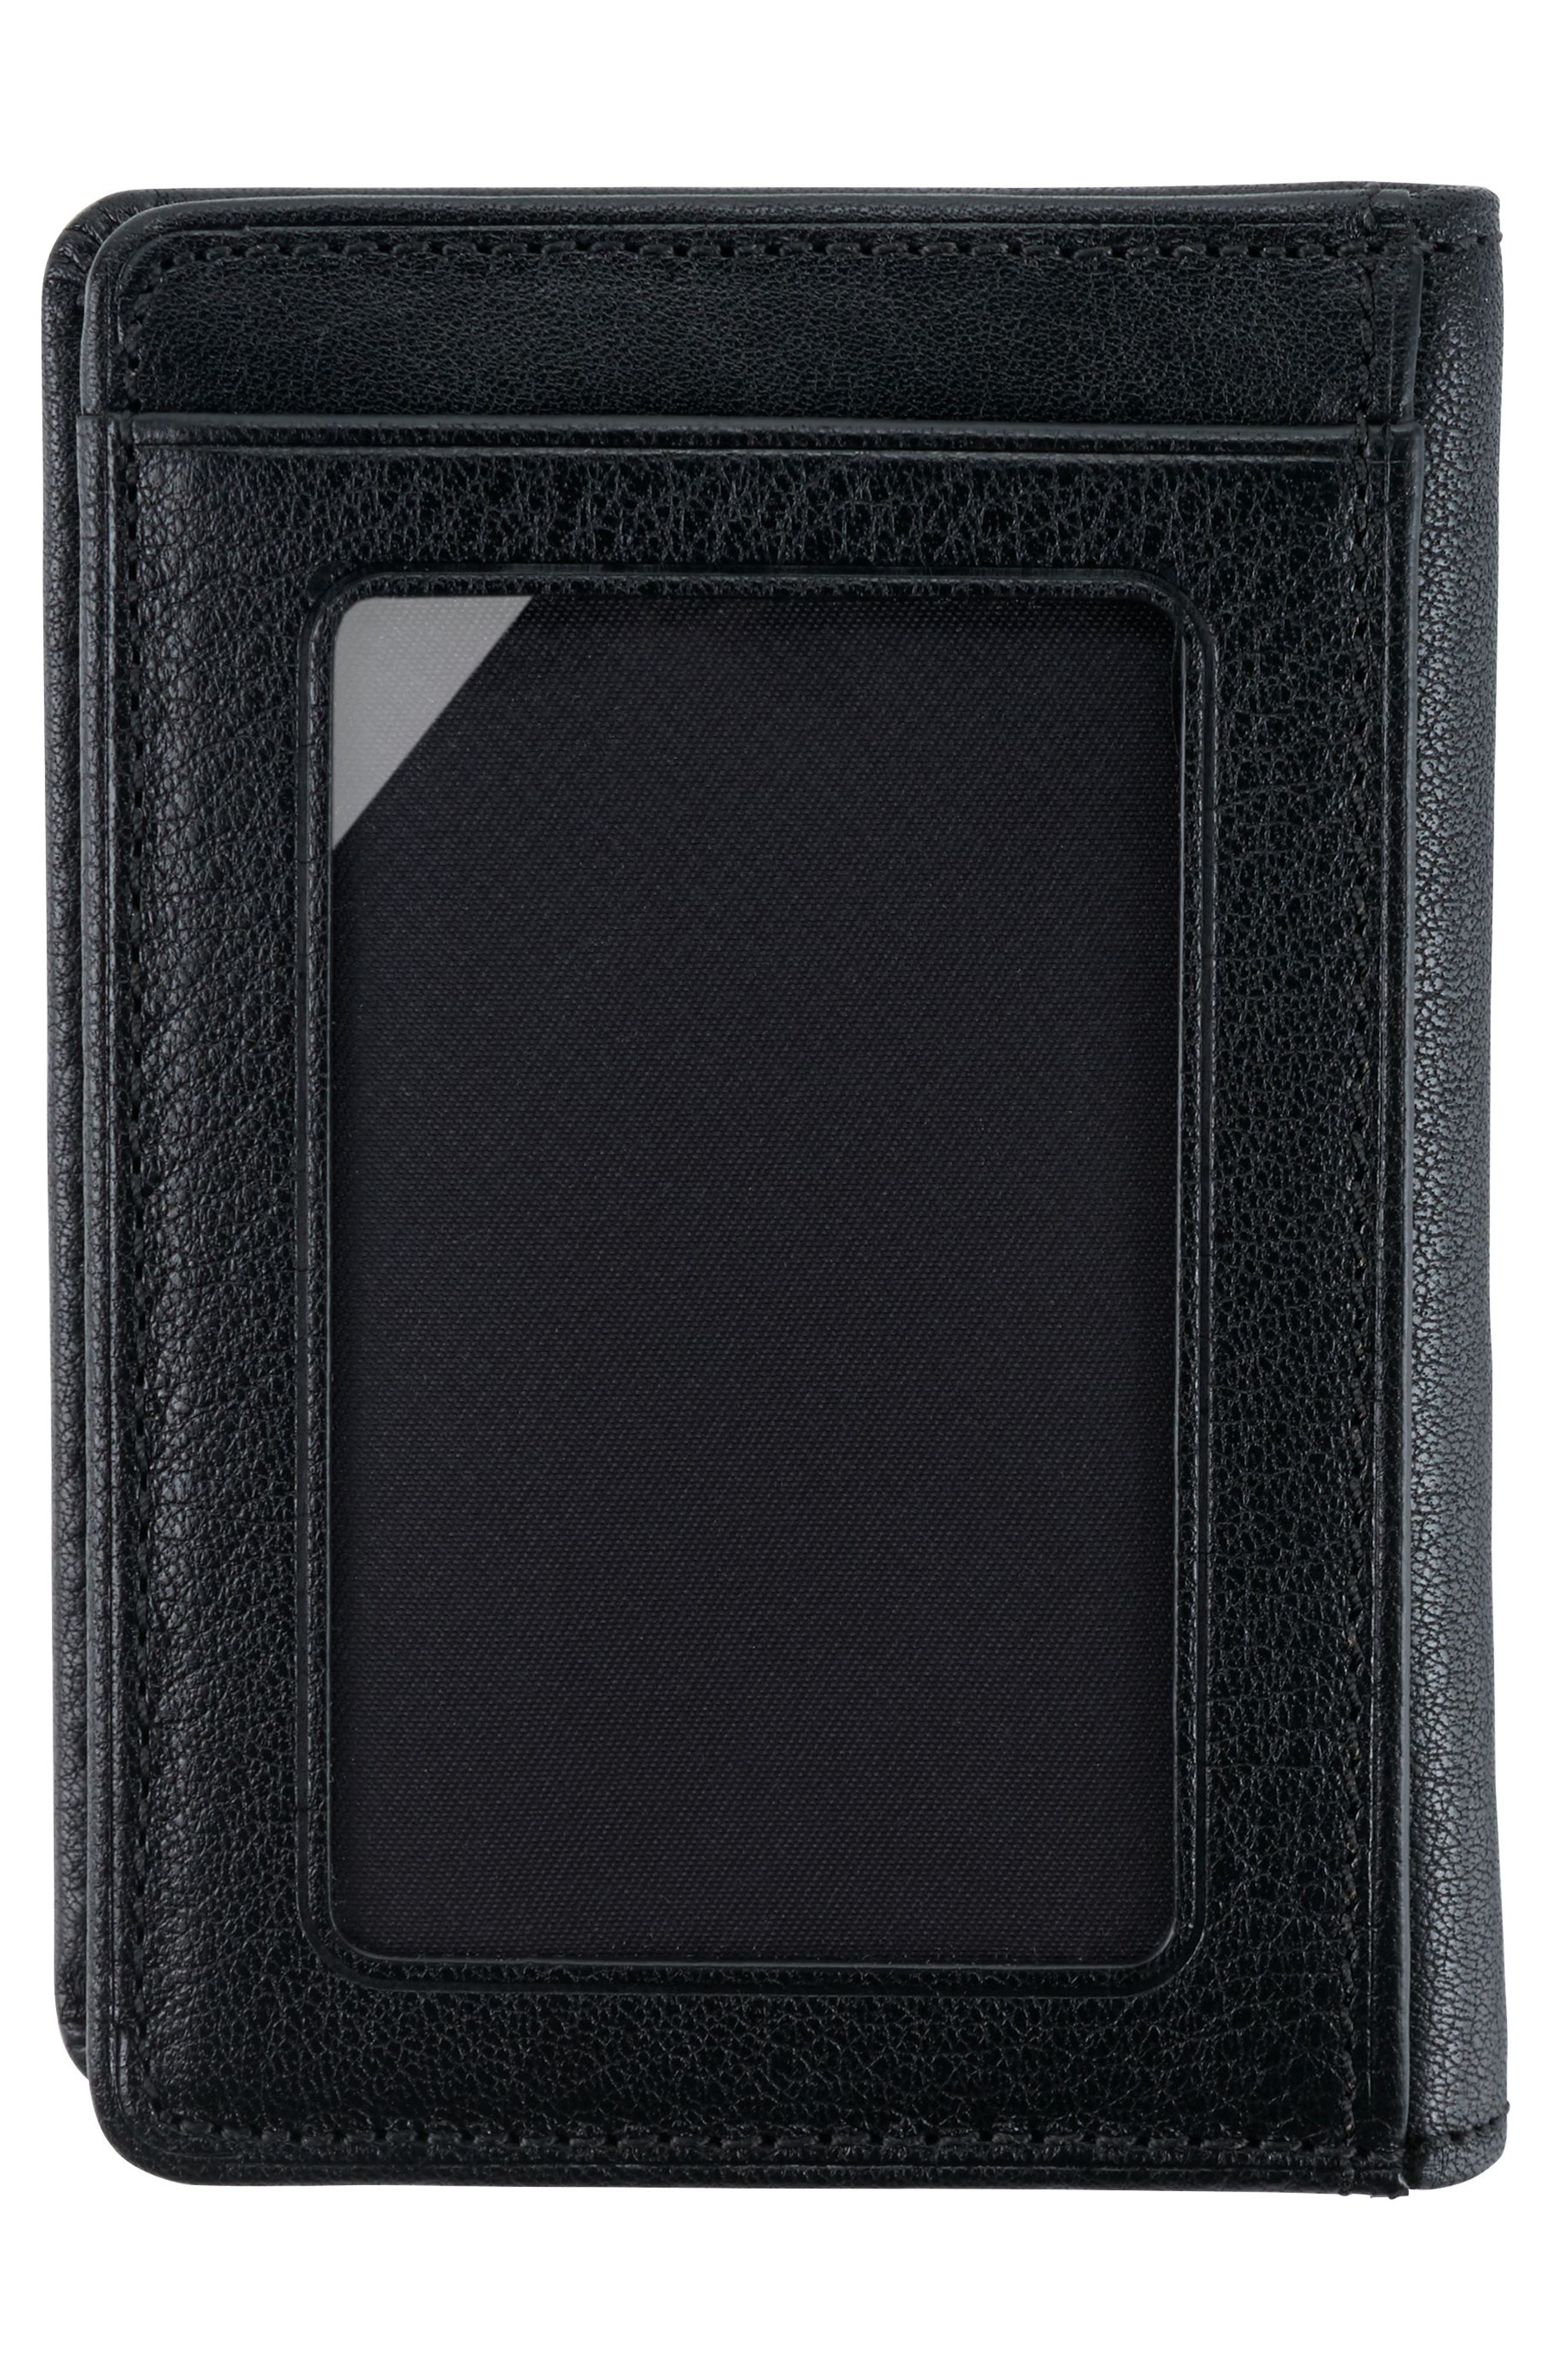 Leather Card Case,                             Alternate thumbnail 3, color,                             Black Textured